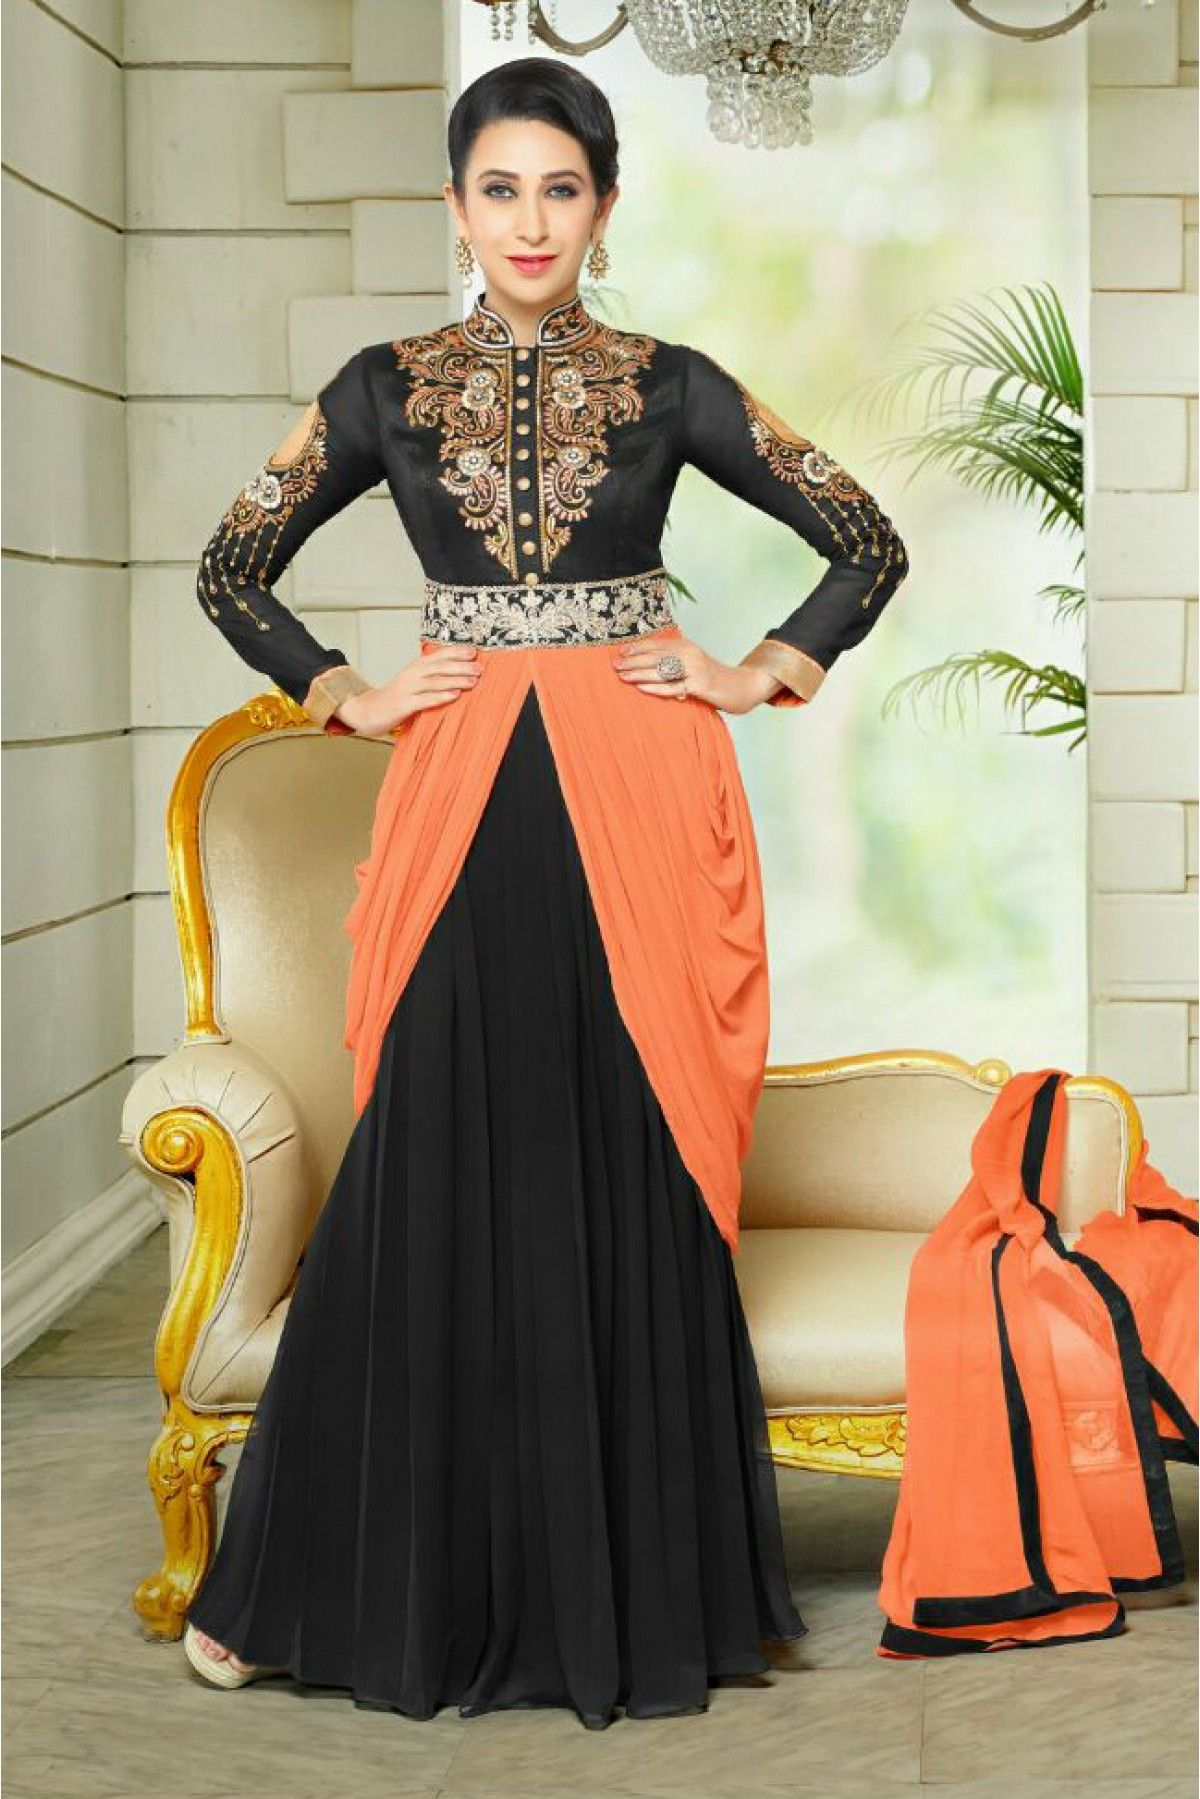 01daff4d4d Black and Peach Colour Georgette Fabric Designer Semi Stitched Anarkali  Salwar Kameez Comes With Matching Dupatta and Bottom Fabric.